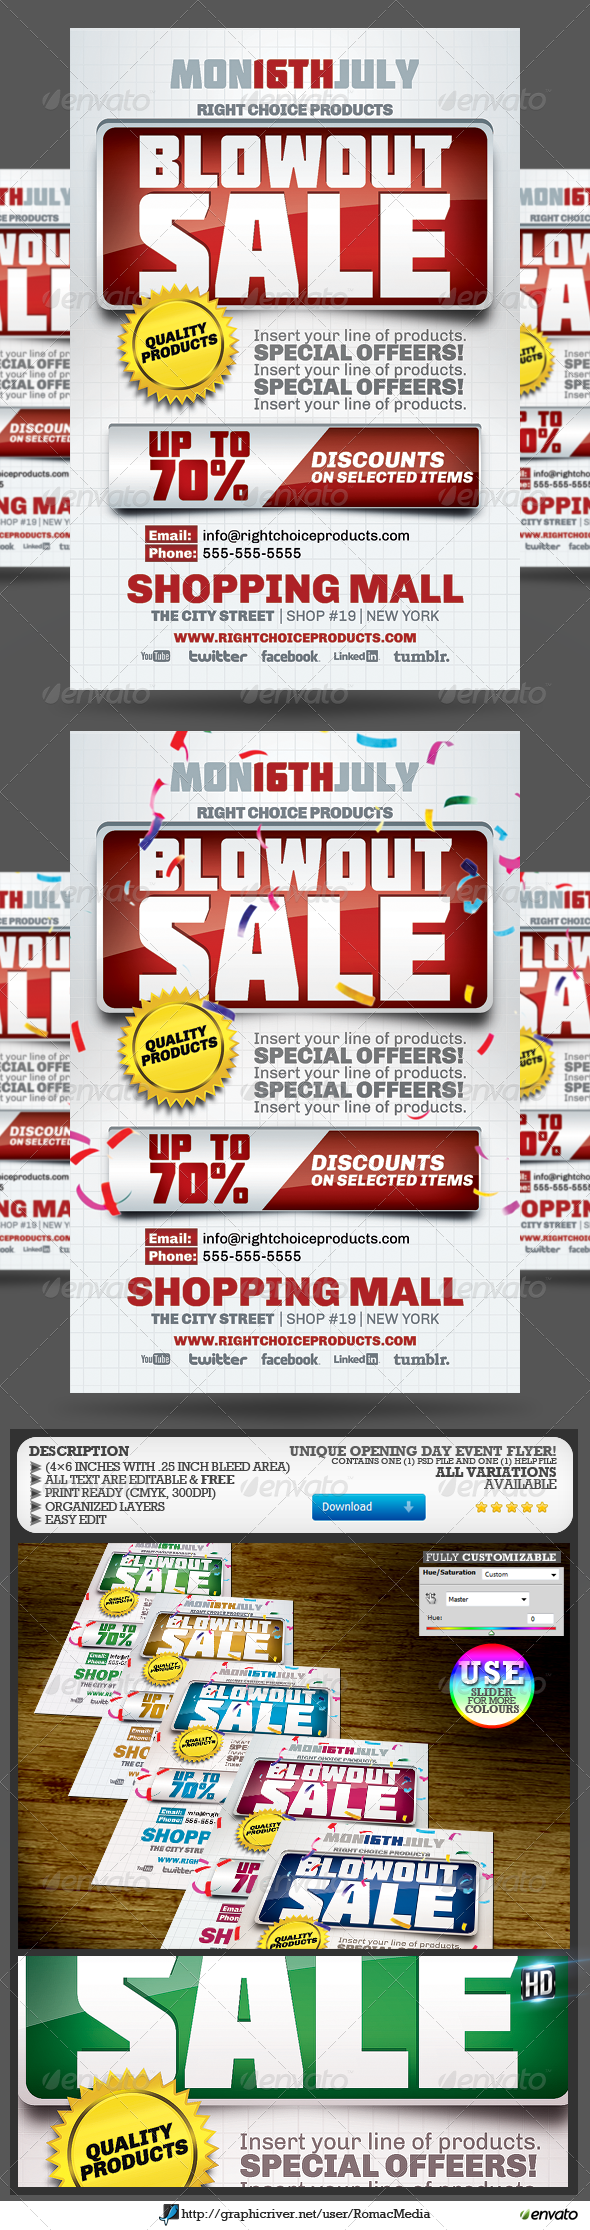 GraphicRiver Blowout Sale Event Flyer 5342153